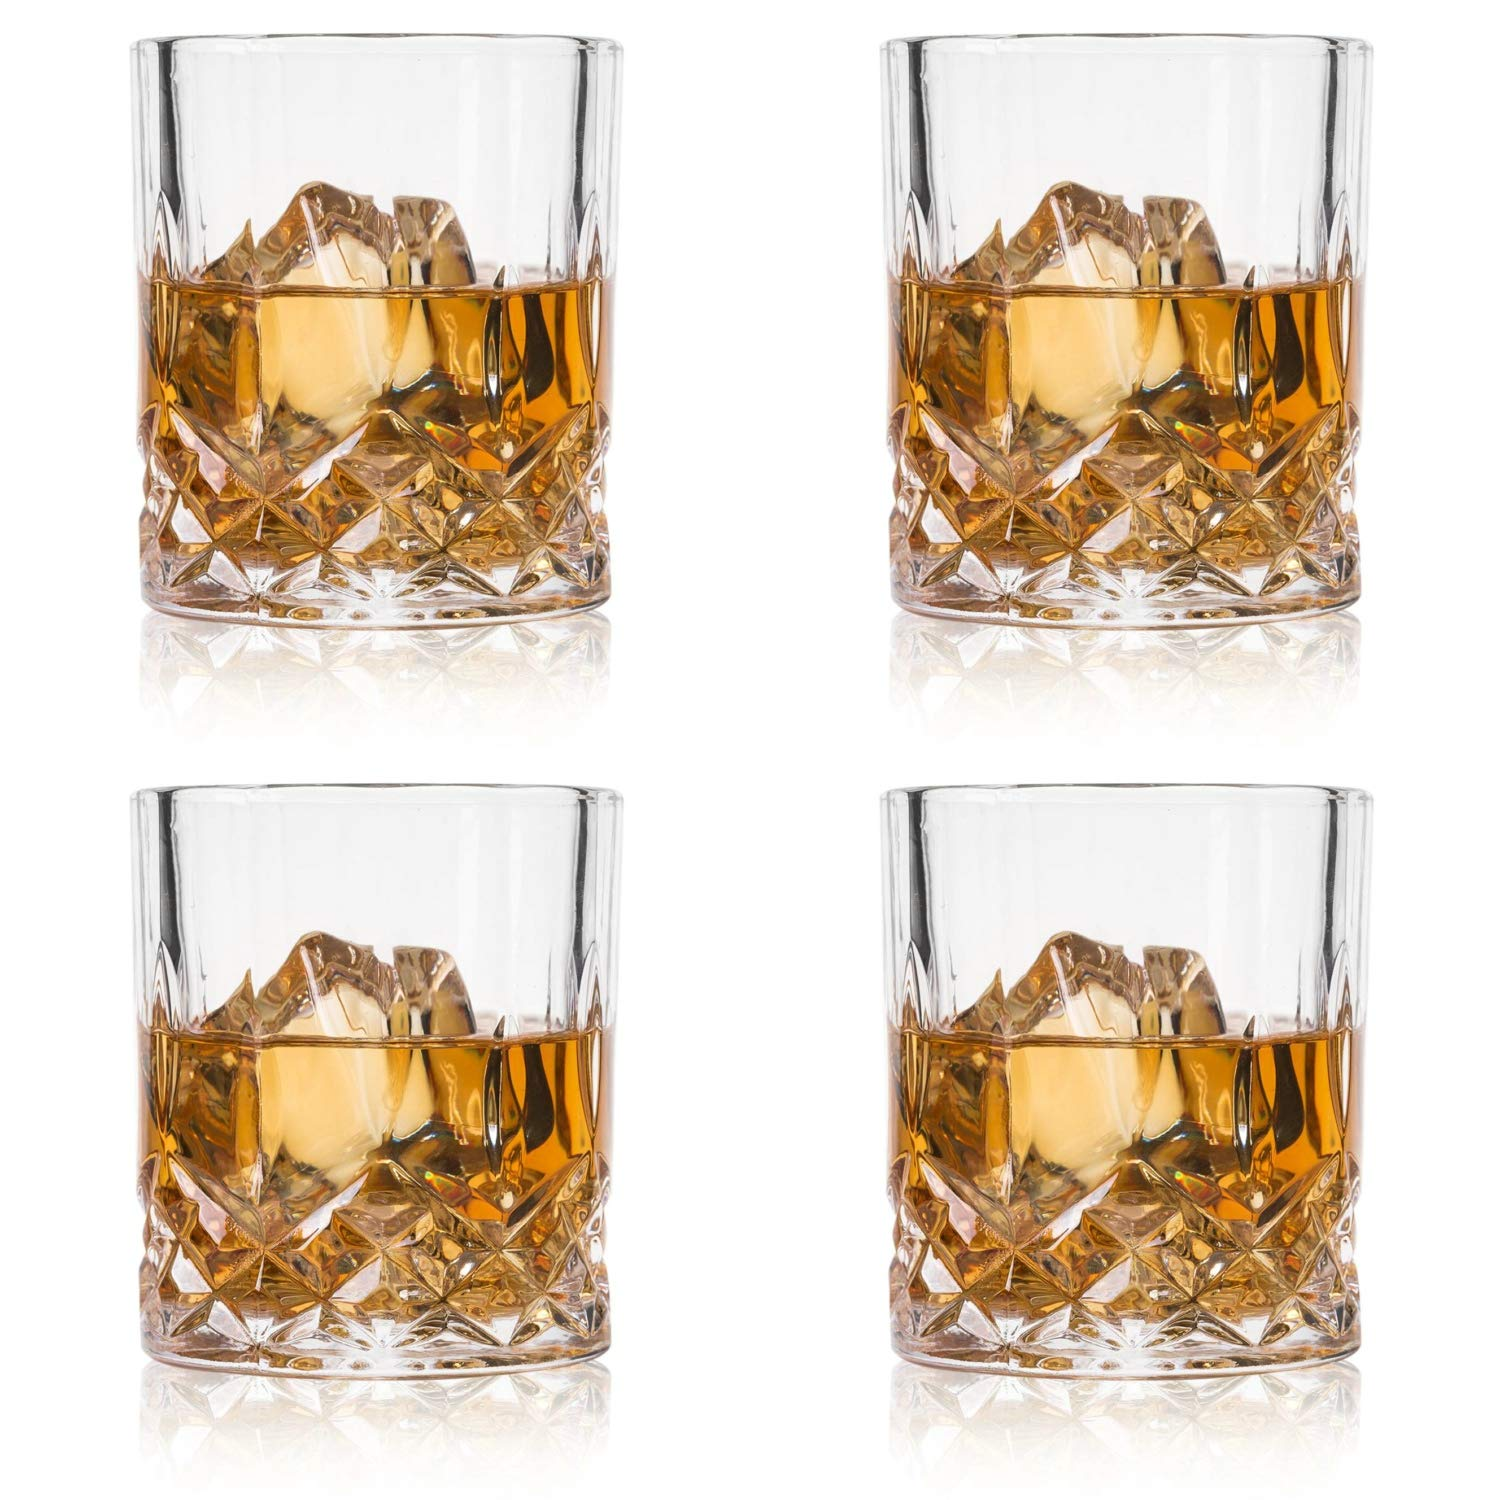 GLASKEY Whiskey Glasses, Set of 4 Scotch Glass Tumblers for Drinking Bourbon, Cognac, Irish Whisky, Large 7-12oz Premium Lead-Free Crystal Old Fashioned Glass by GLASKEY